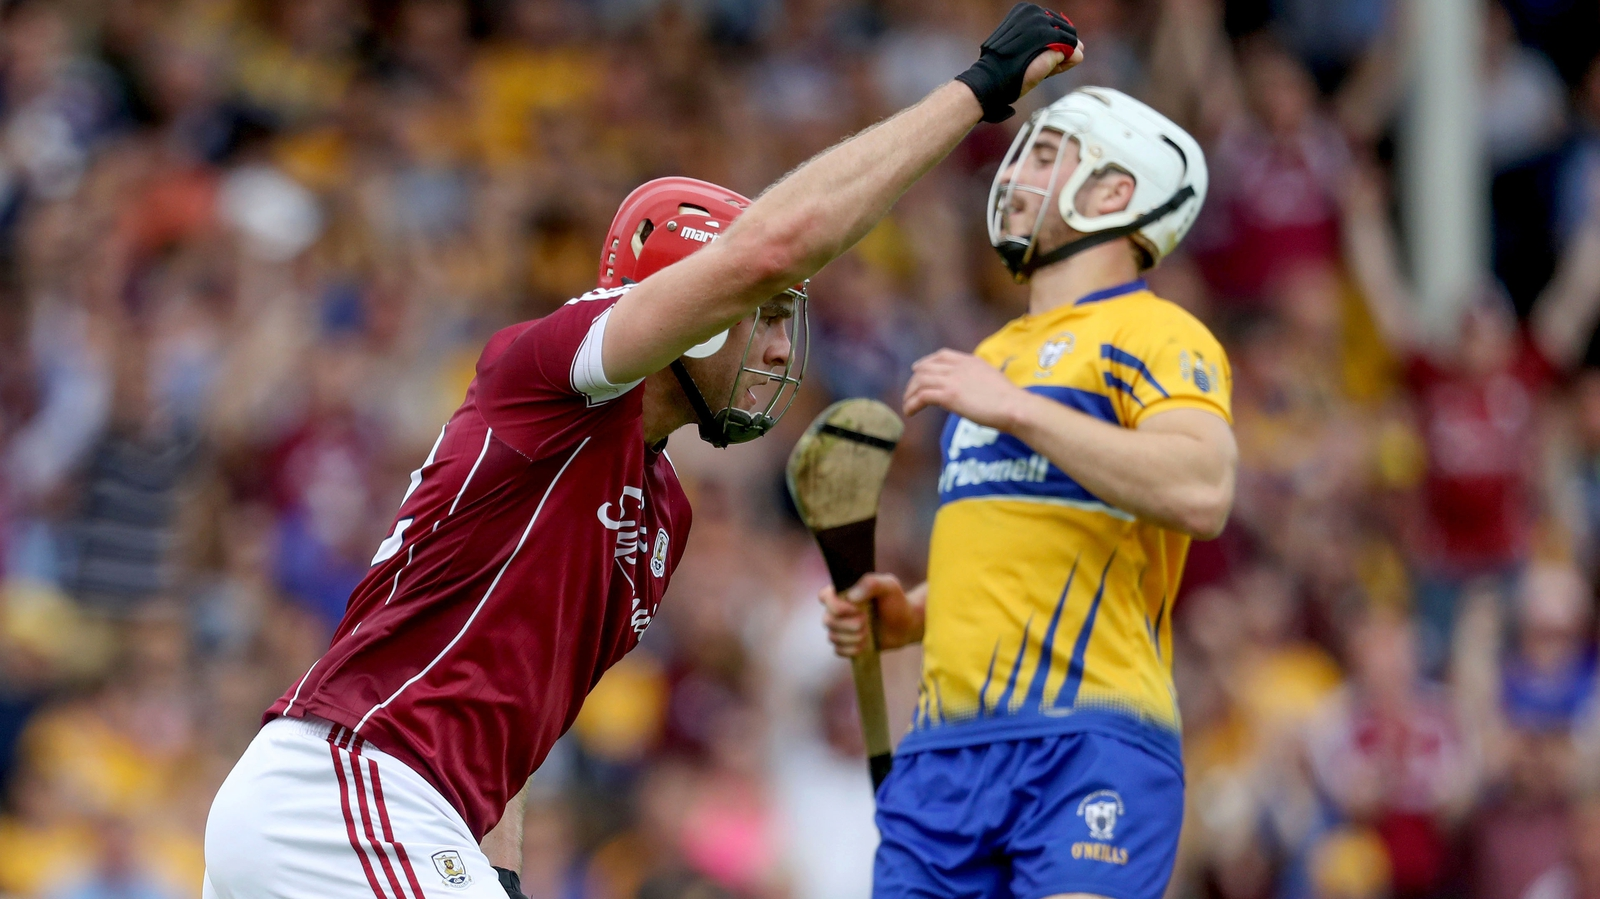 Image - Johnny Glynn is Galway's most physically imposing forward